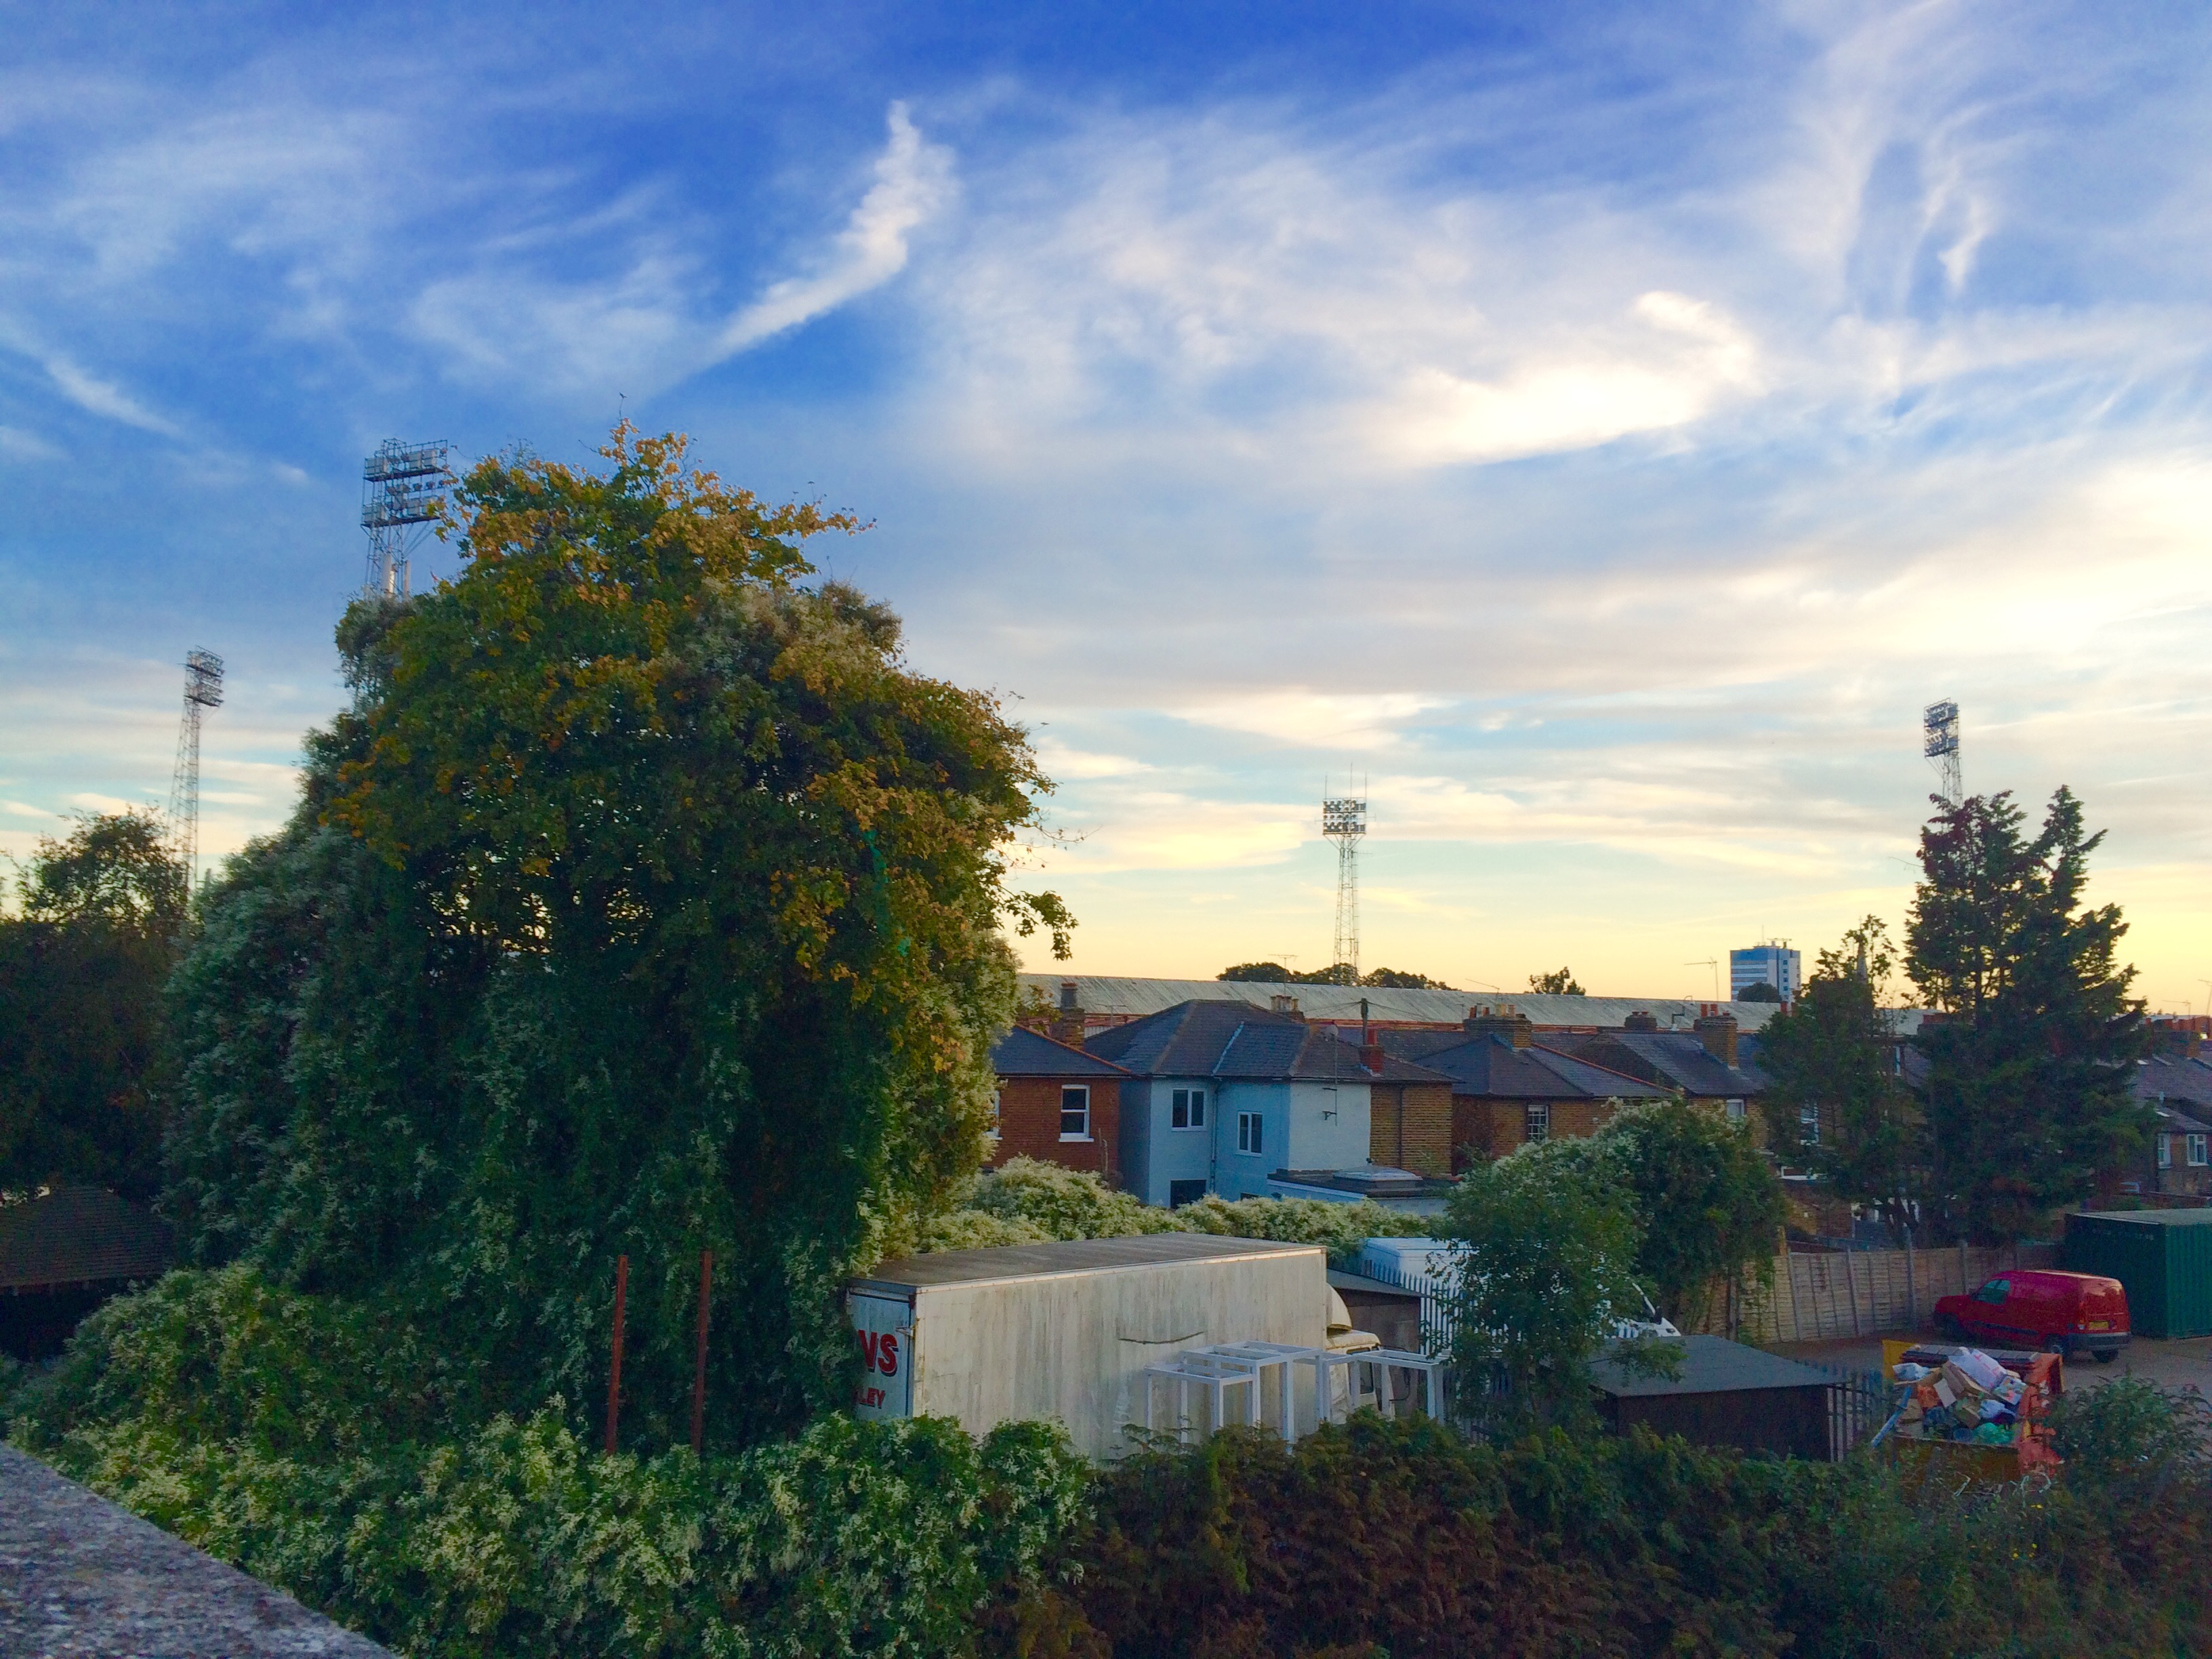 The sun going down on Brentford dreams?